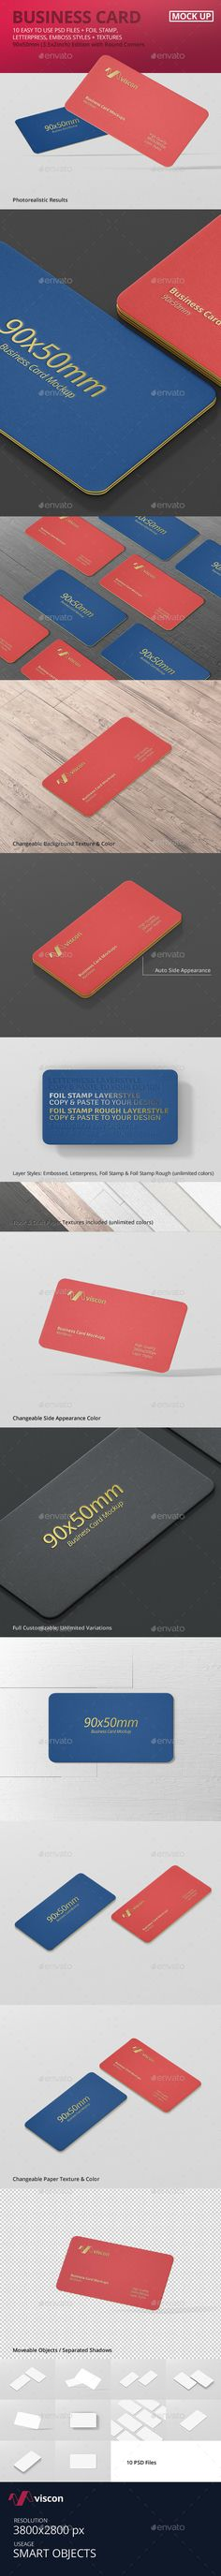 realistic round corner business card mock up mockup business